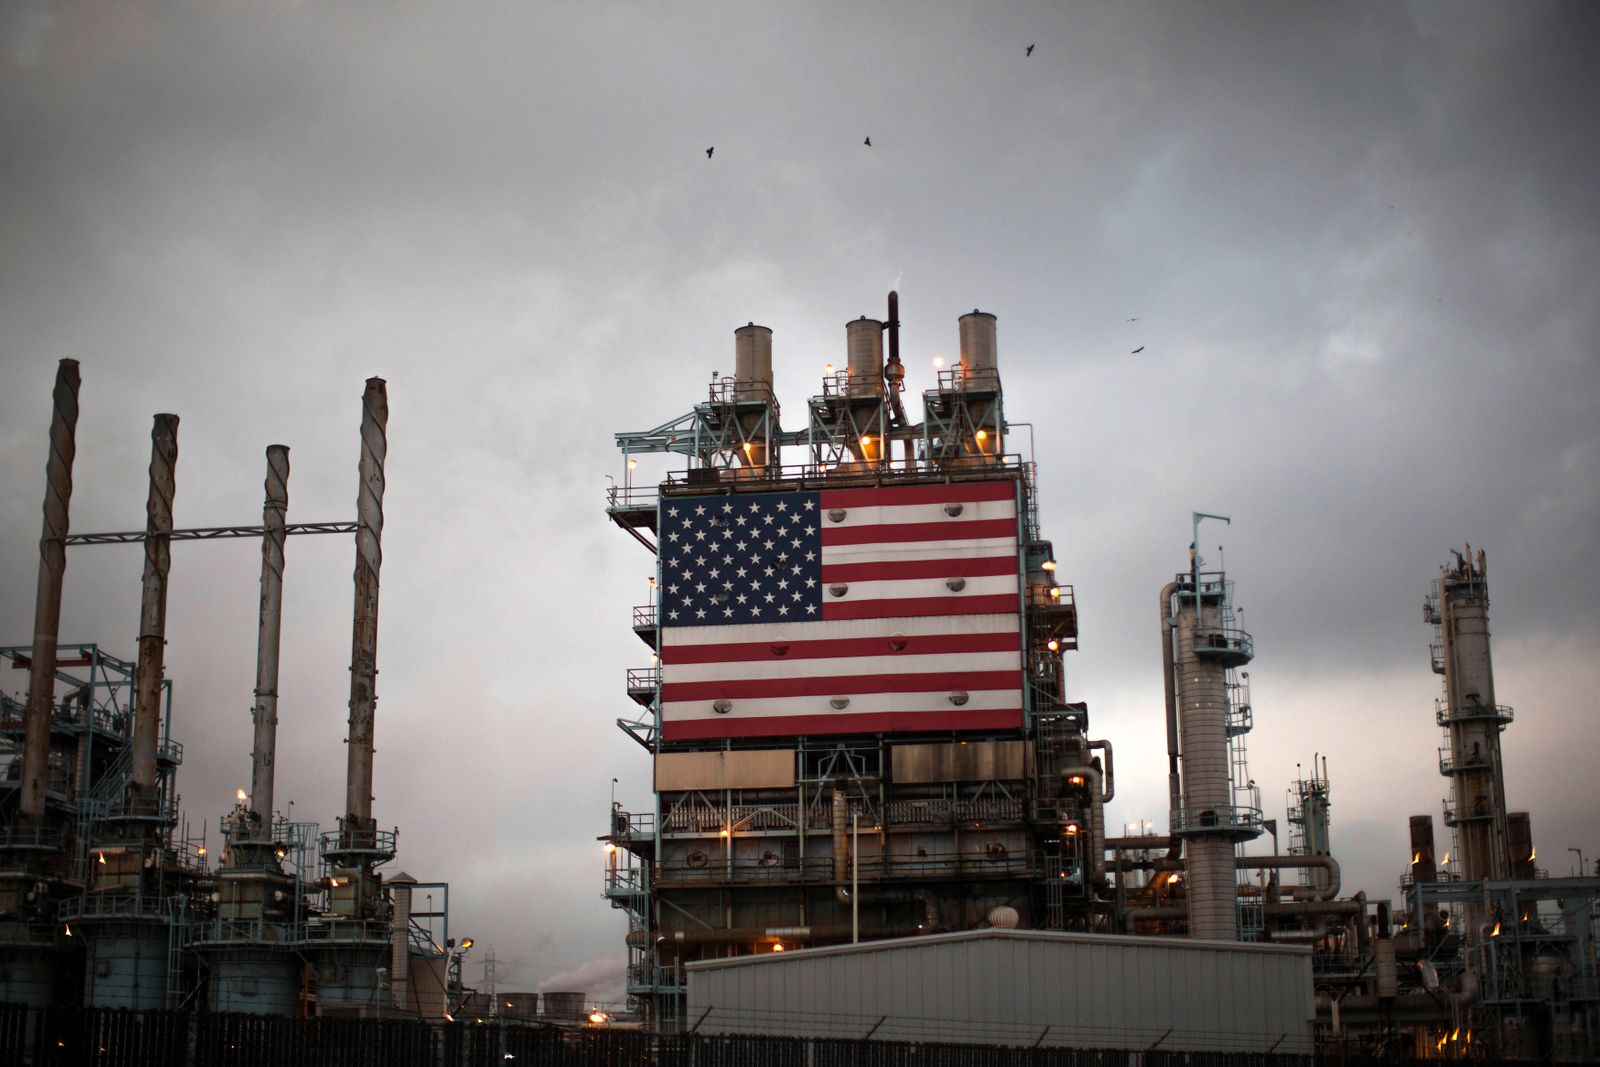 Raffinerie / Industrie / US-Flagge / USA